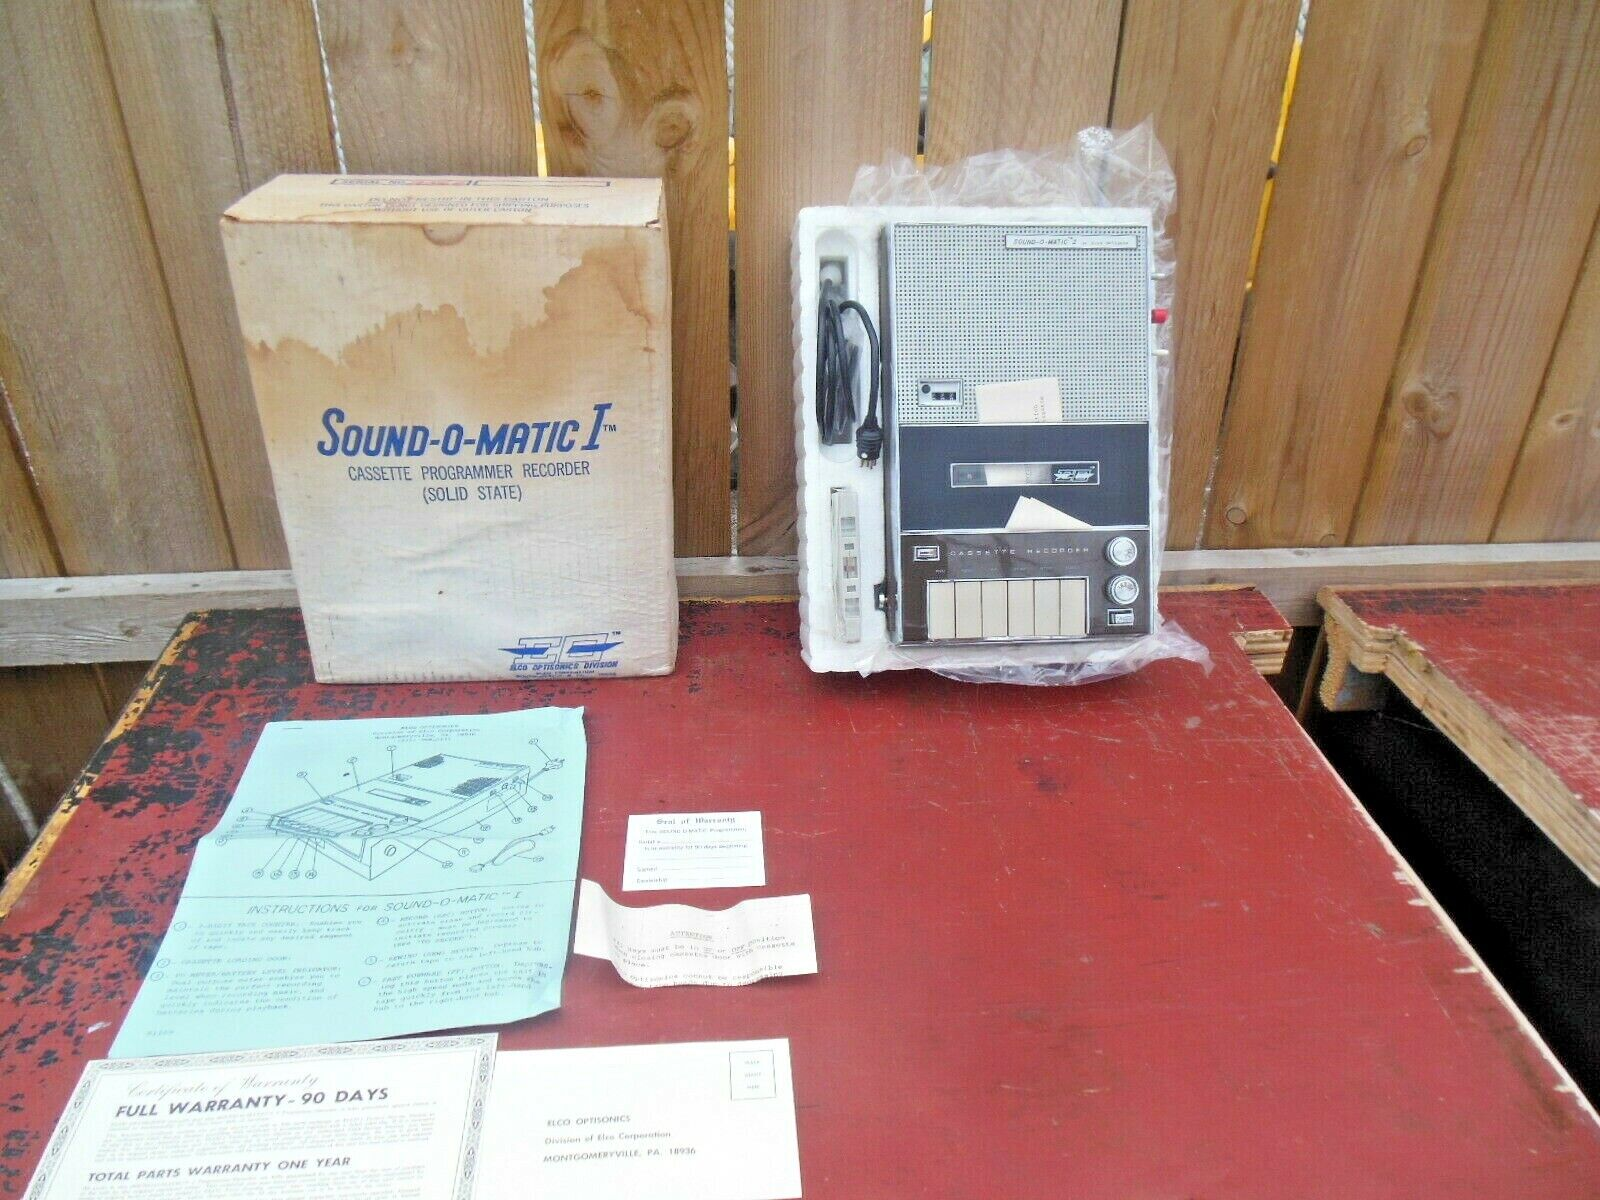 VTG 1969 RARE SOUND O MATIC 1 JAPAN CASSETTE PLAYER RECORDER MINT IN BOX NOS  - $36.00